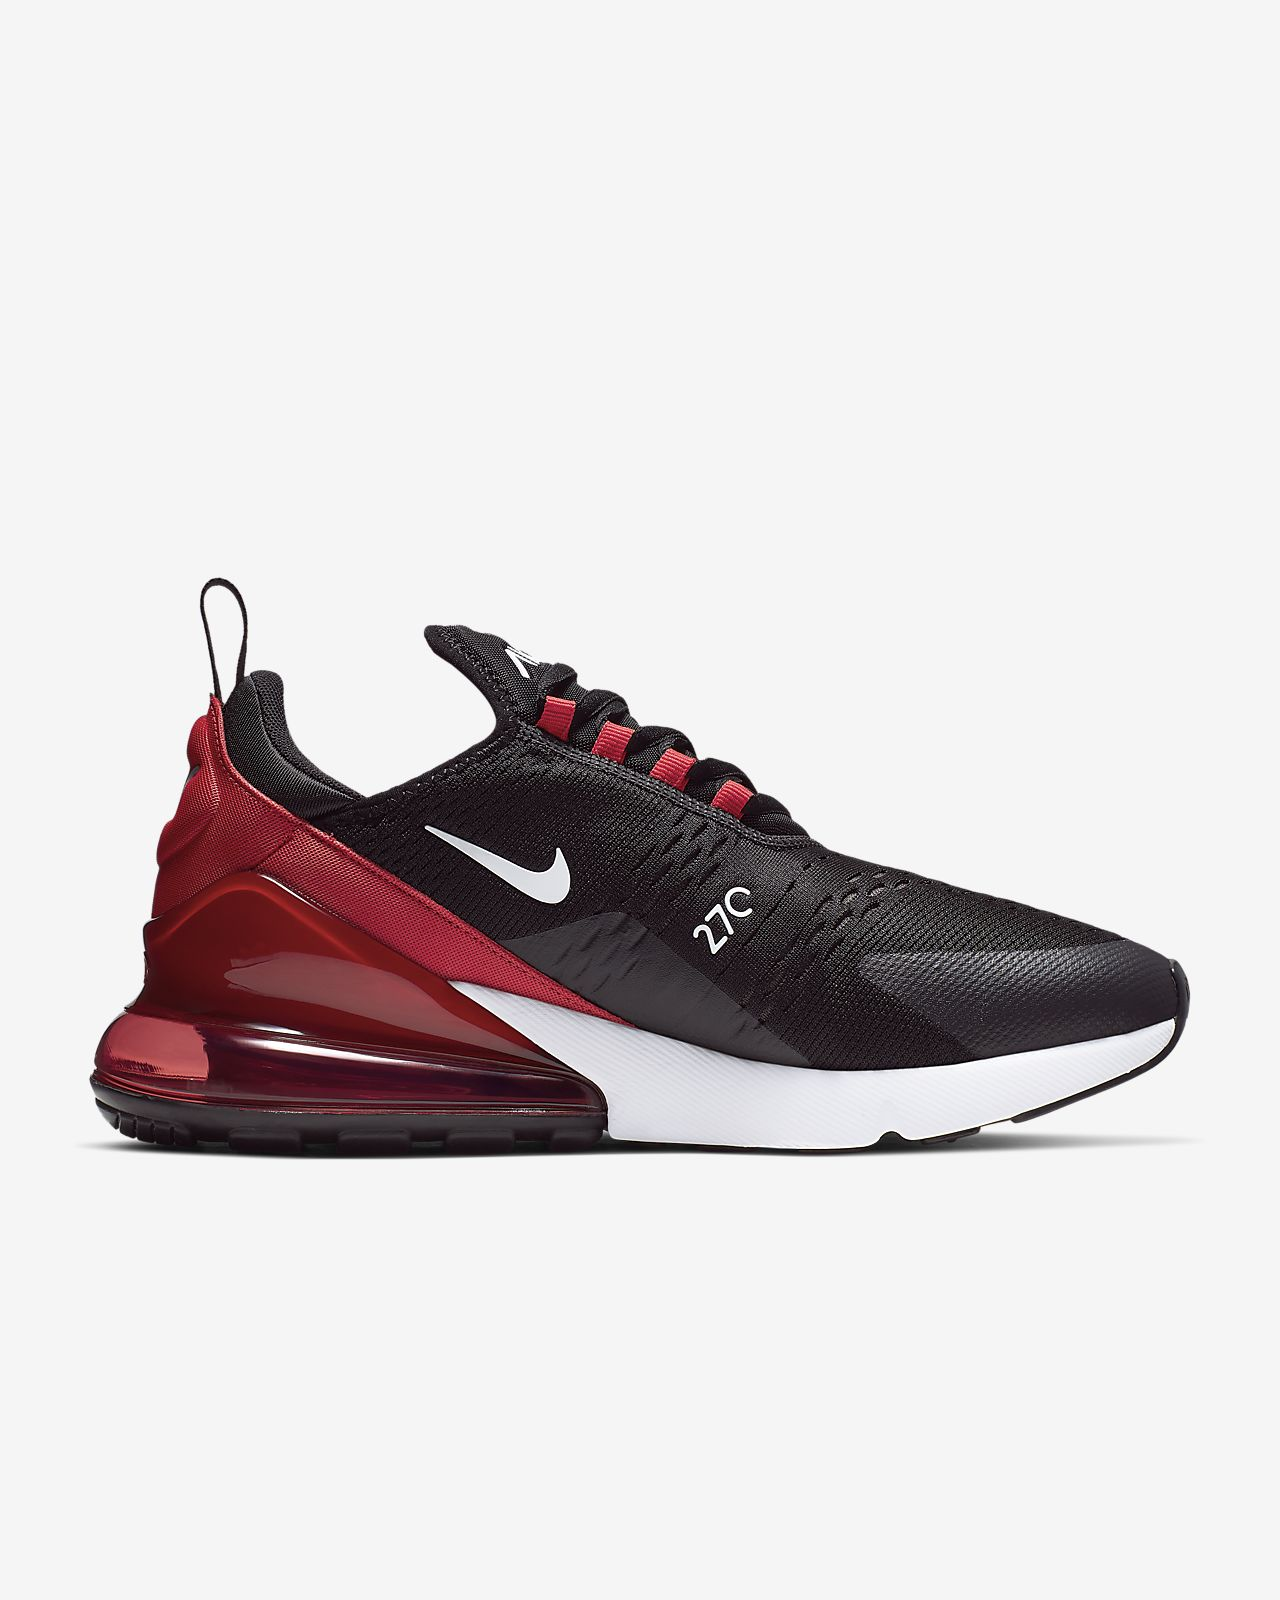 lowest price dca91 33851 ... Nike Air Max 270 Men s Shoe